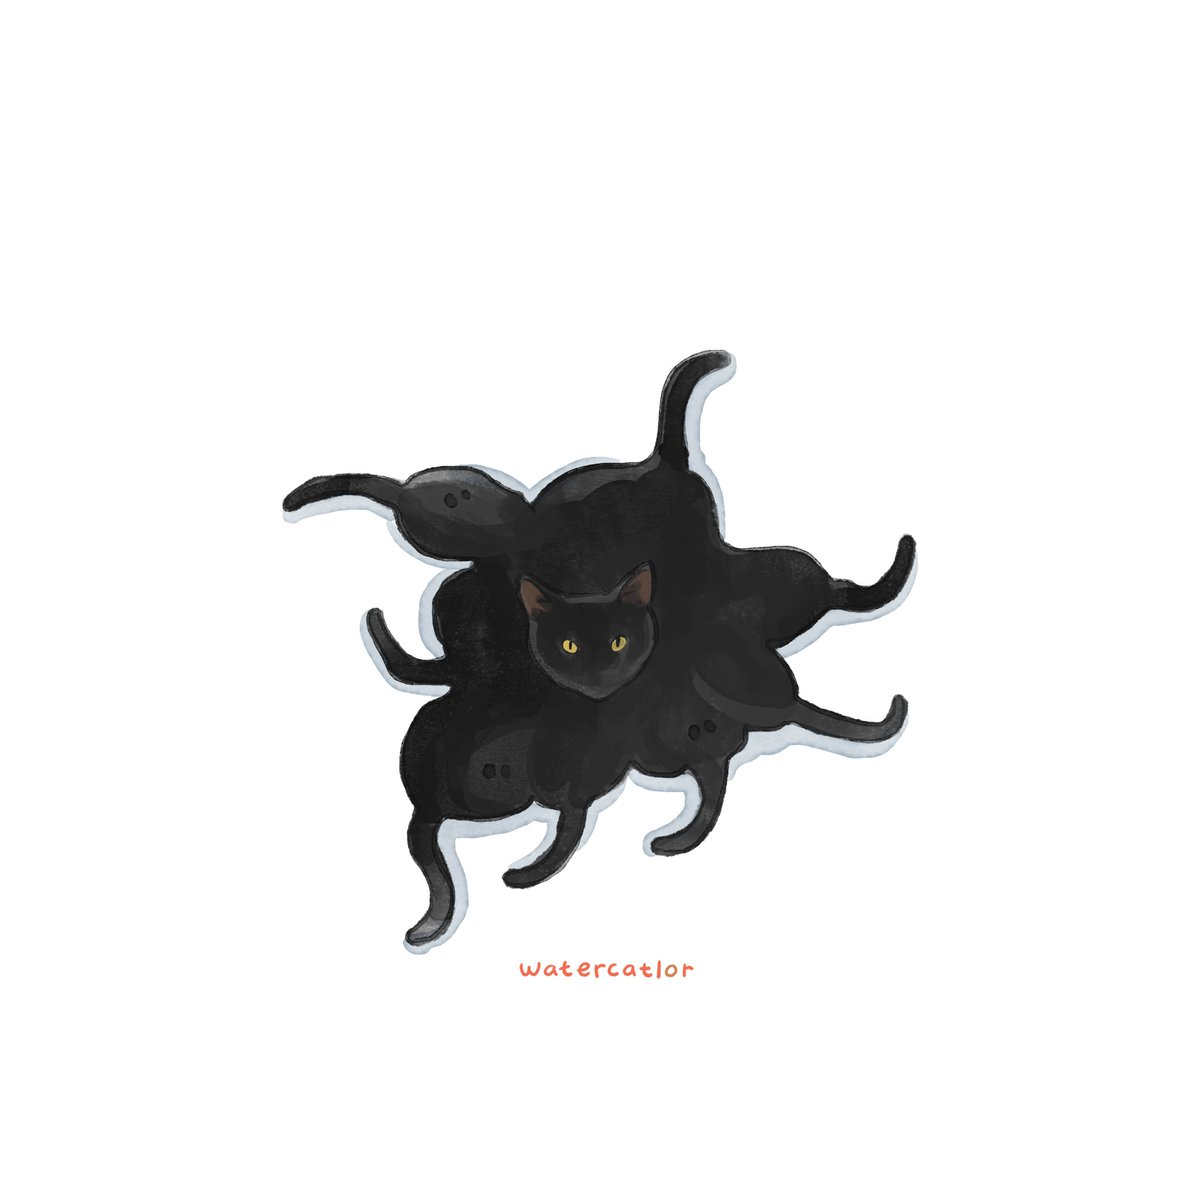 Cattopus . photo credit: unknown #angrycatto #illustration #doodle #meowed #9gagmeowdle #cat #kitty #watercatlor #9gagcute #9gag #catsareliquid #catmemes #catsofinstagram #kitty #kitten #catsareliquid #catlady #chonky #chonkycattospic.twitter.com/bP7BUCa7Xe